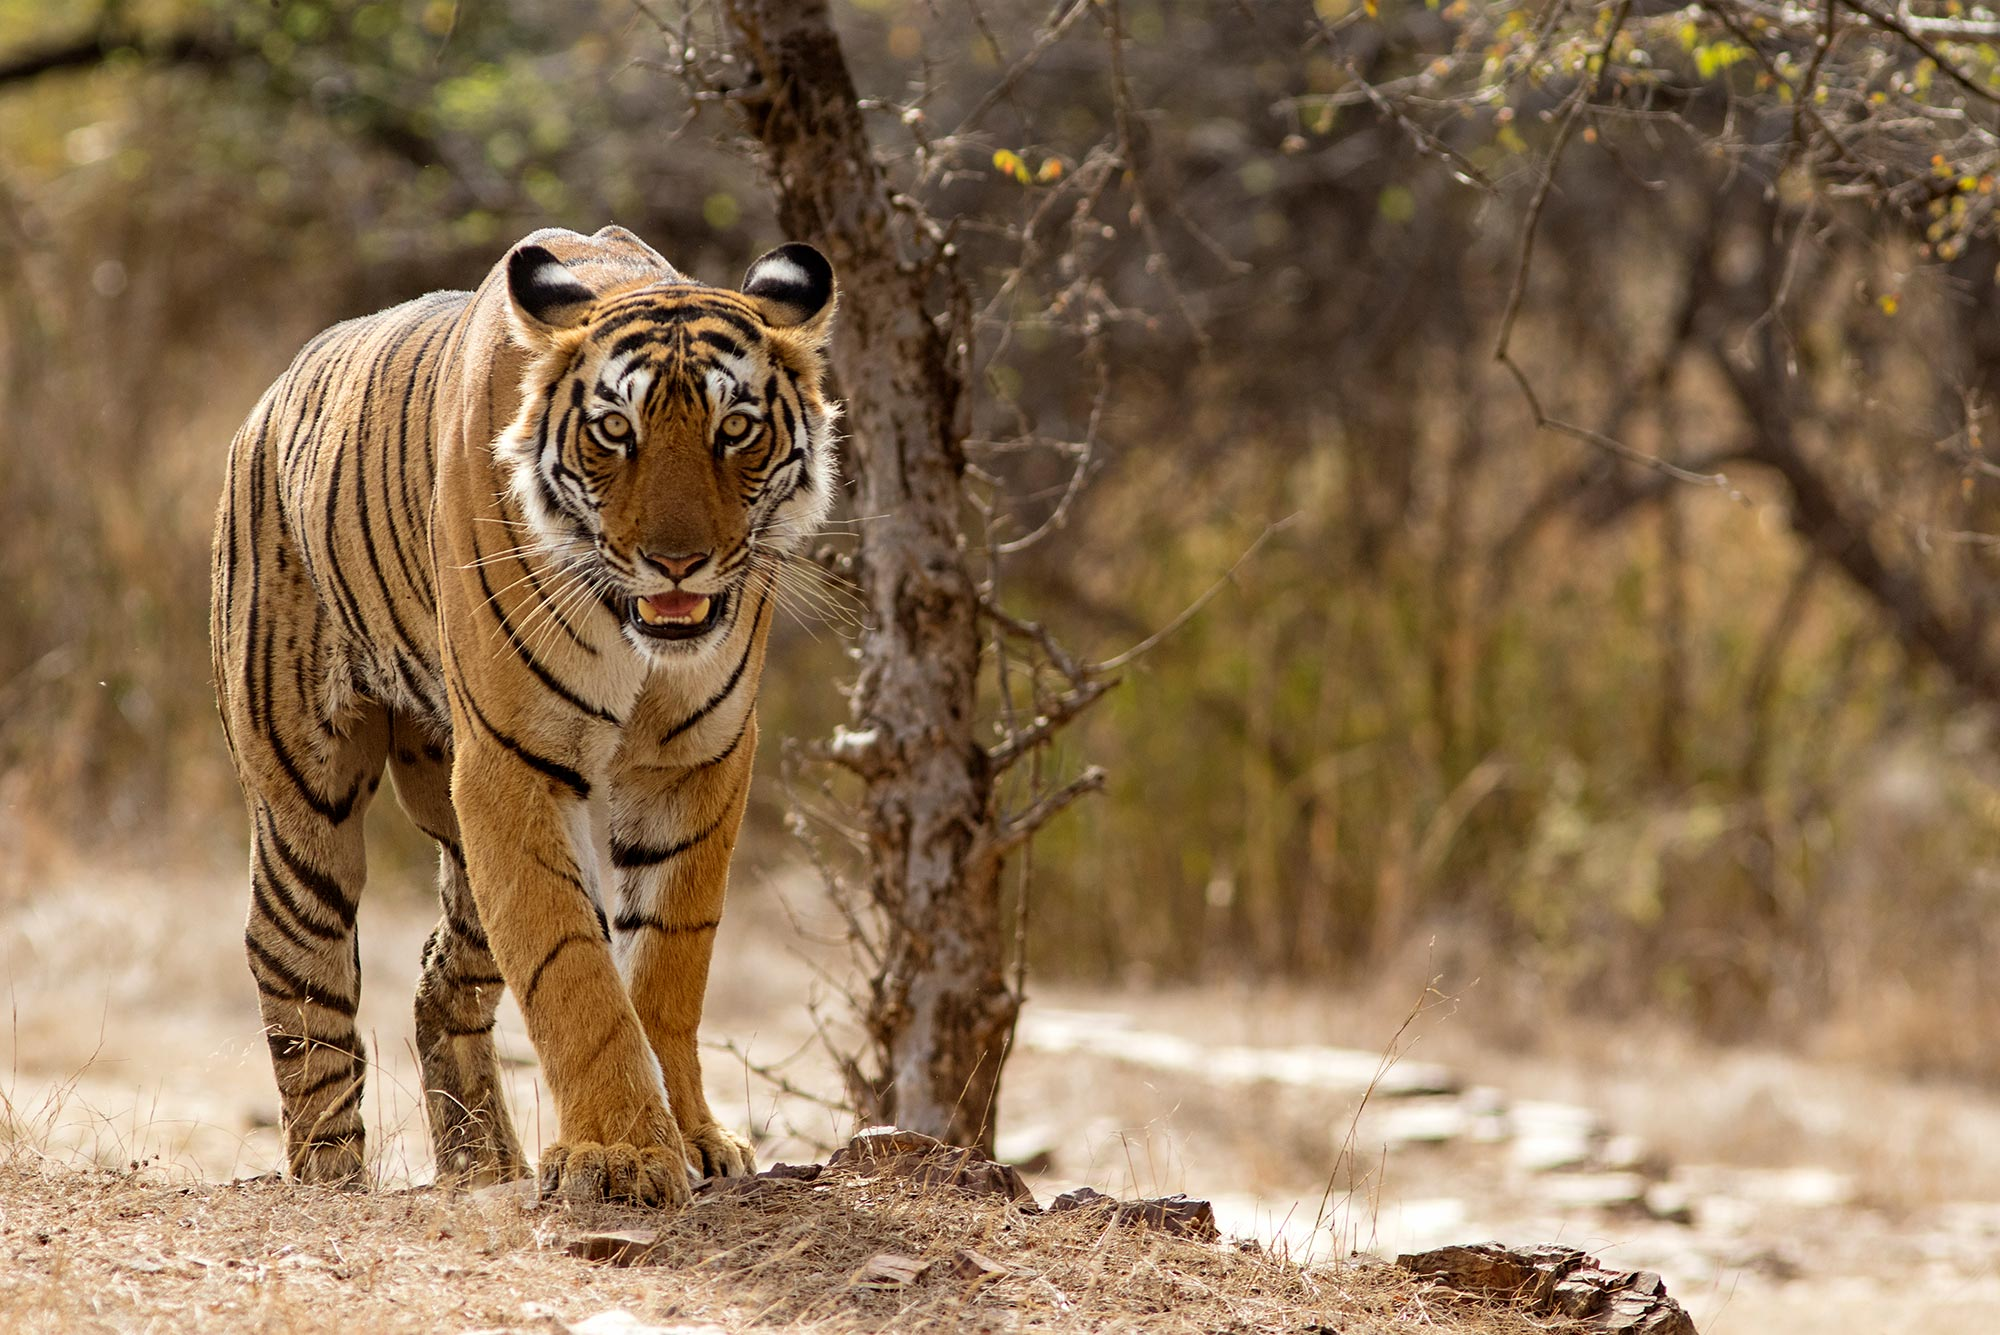 Image of a tiger in the wild. A dry landscape and brush is seen behind it.